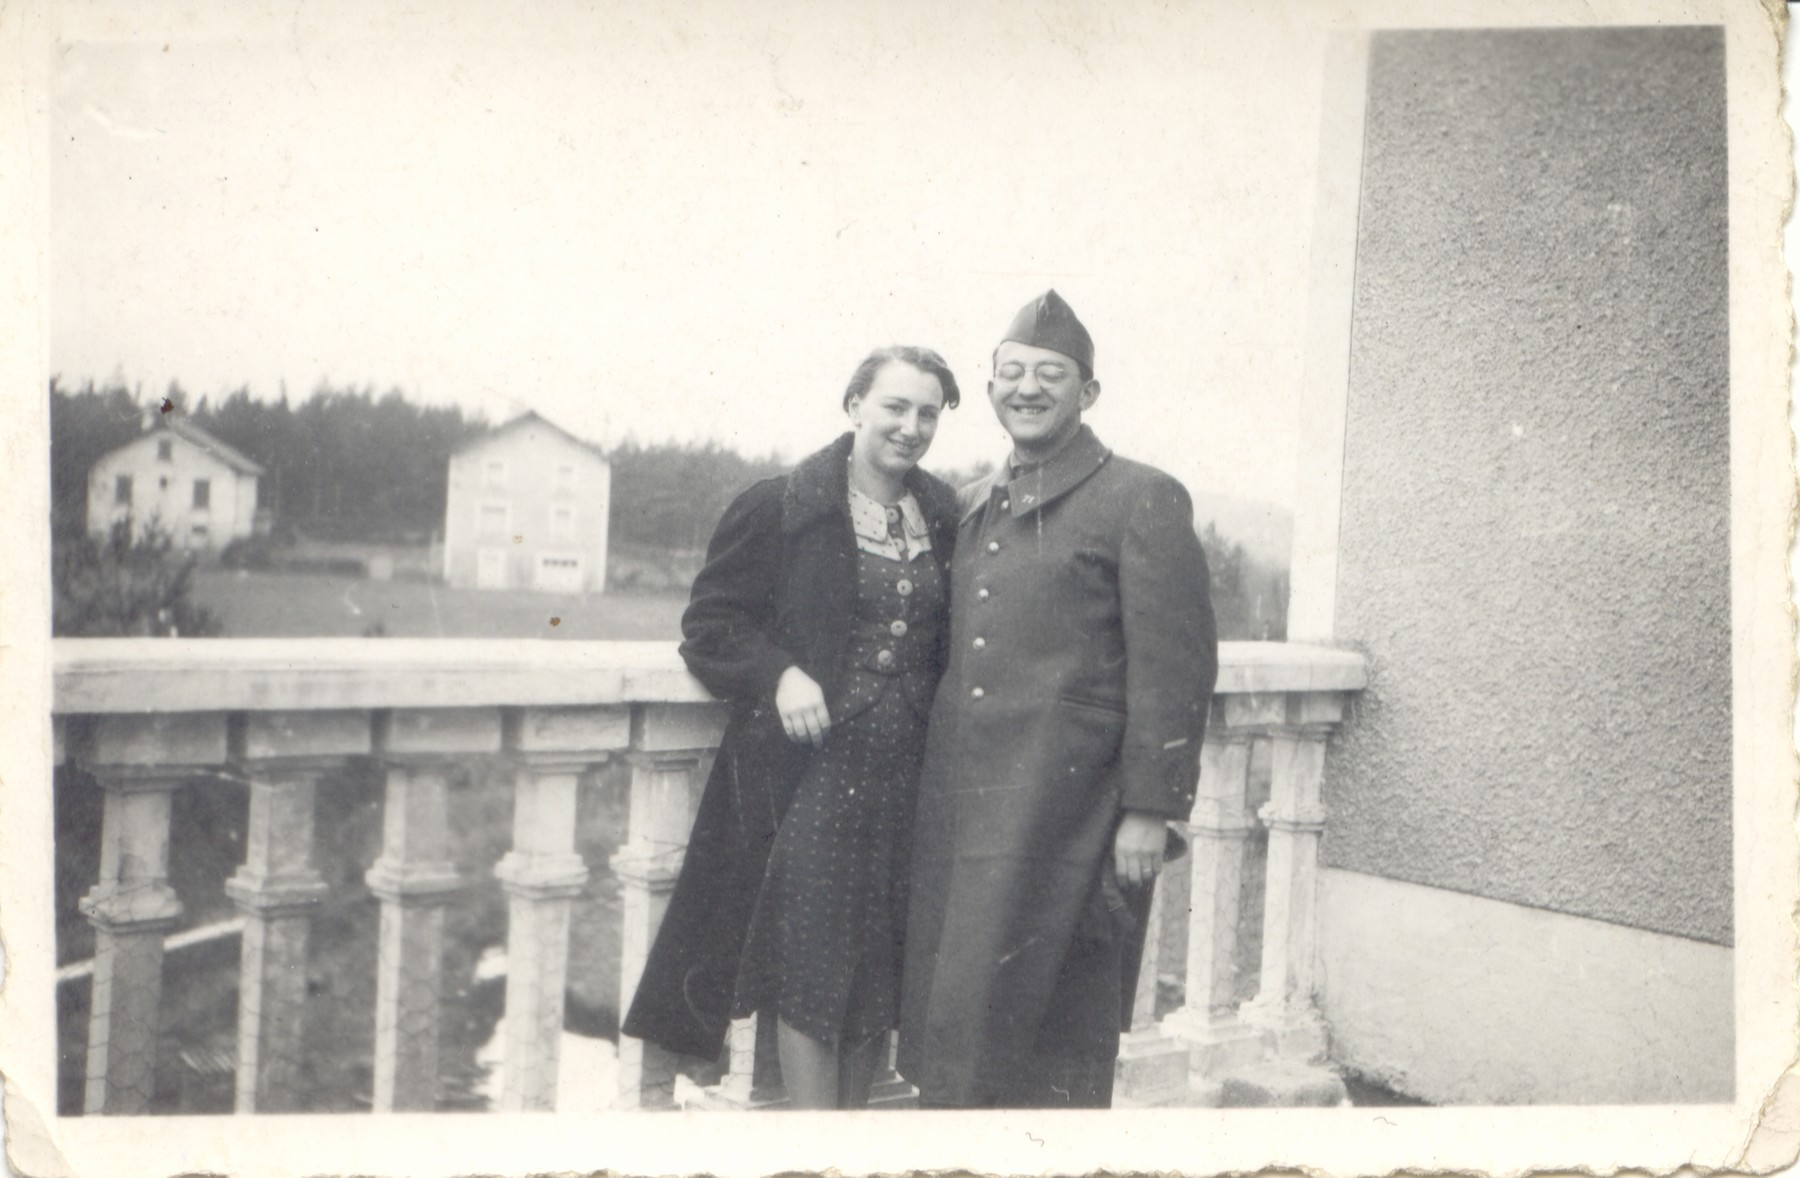 Rene and Germaine Brunschwig pose together on the balcony of a building in Le Chambon-sur-Lignon.